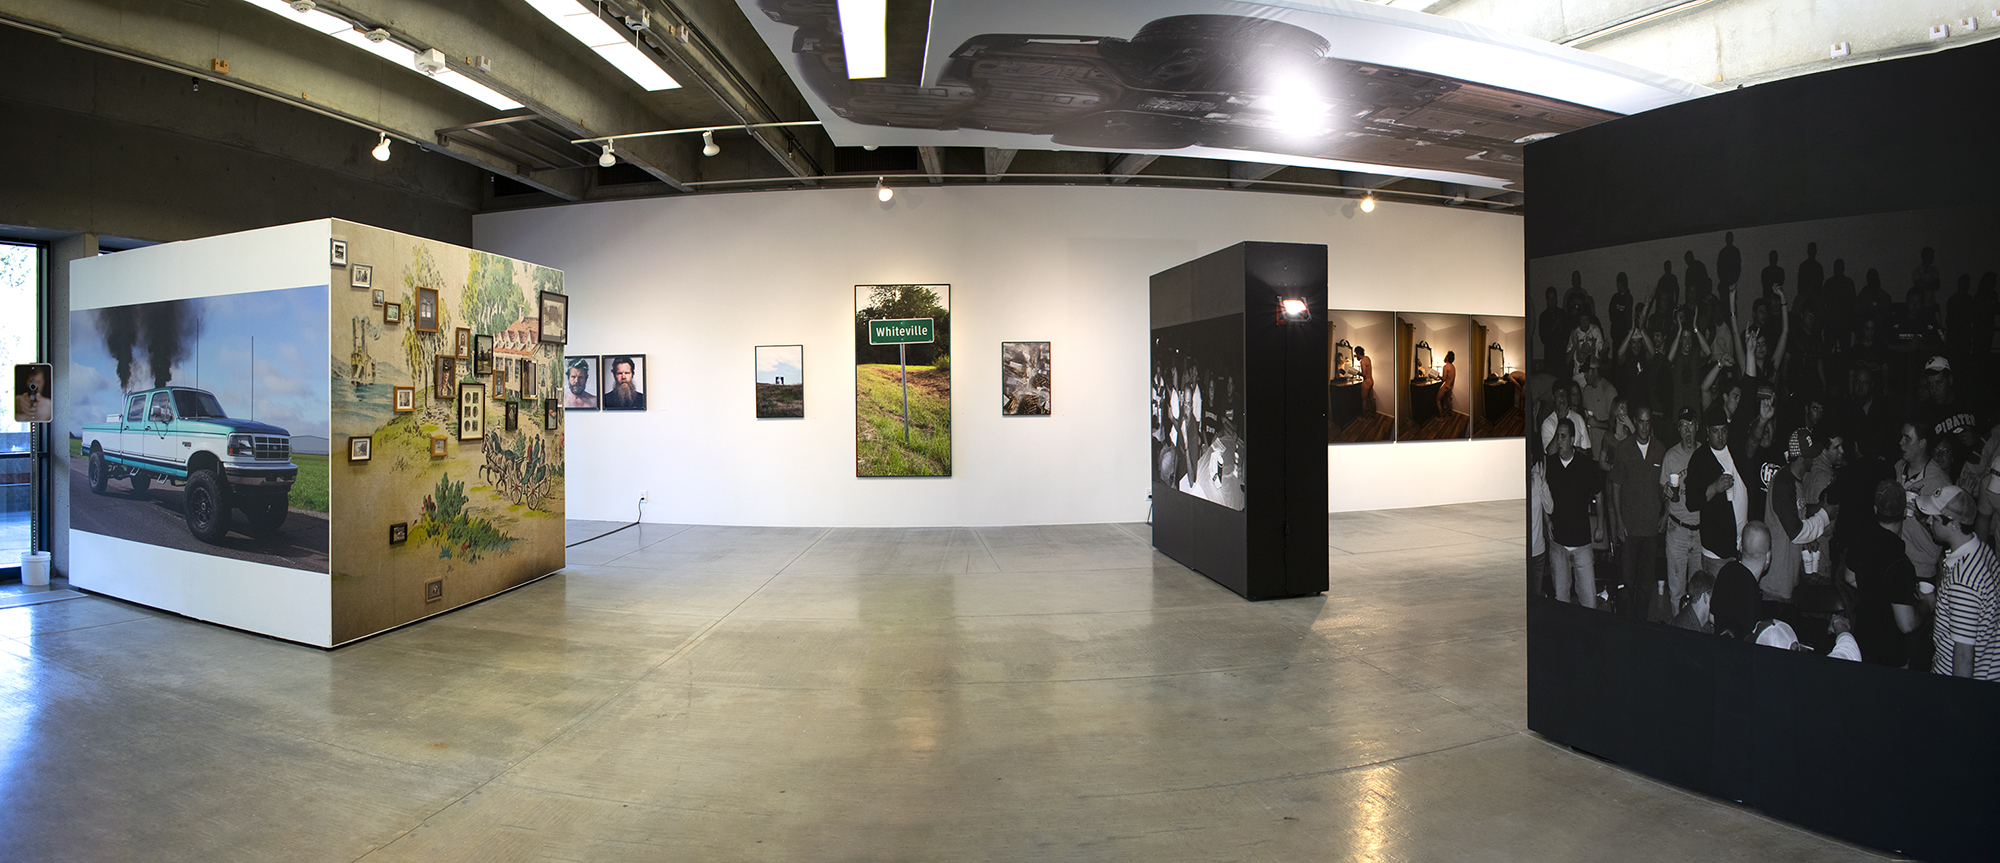 """Panorama view of gallery showing an installation of large scale photographs. On the left is a freestanding wall with a photo of a pick up truck and a wall of smaller framed photos. On the right are two freestanding walls painted black and that have black and white photos of people on them. In the background is a white wall with several photos hanging on it. At the center of the back wall is a lifesize photo of a sign that says """"Whiteville."""" Hanging horizontally on the ceiling at center right is panel with a photo of a car's underside on it."""